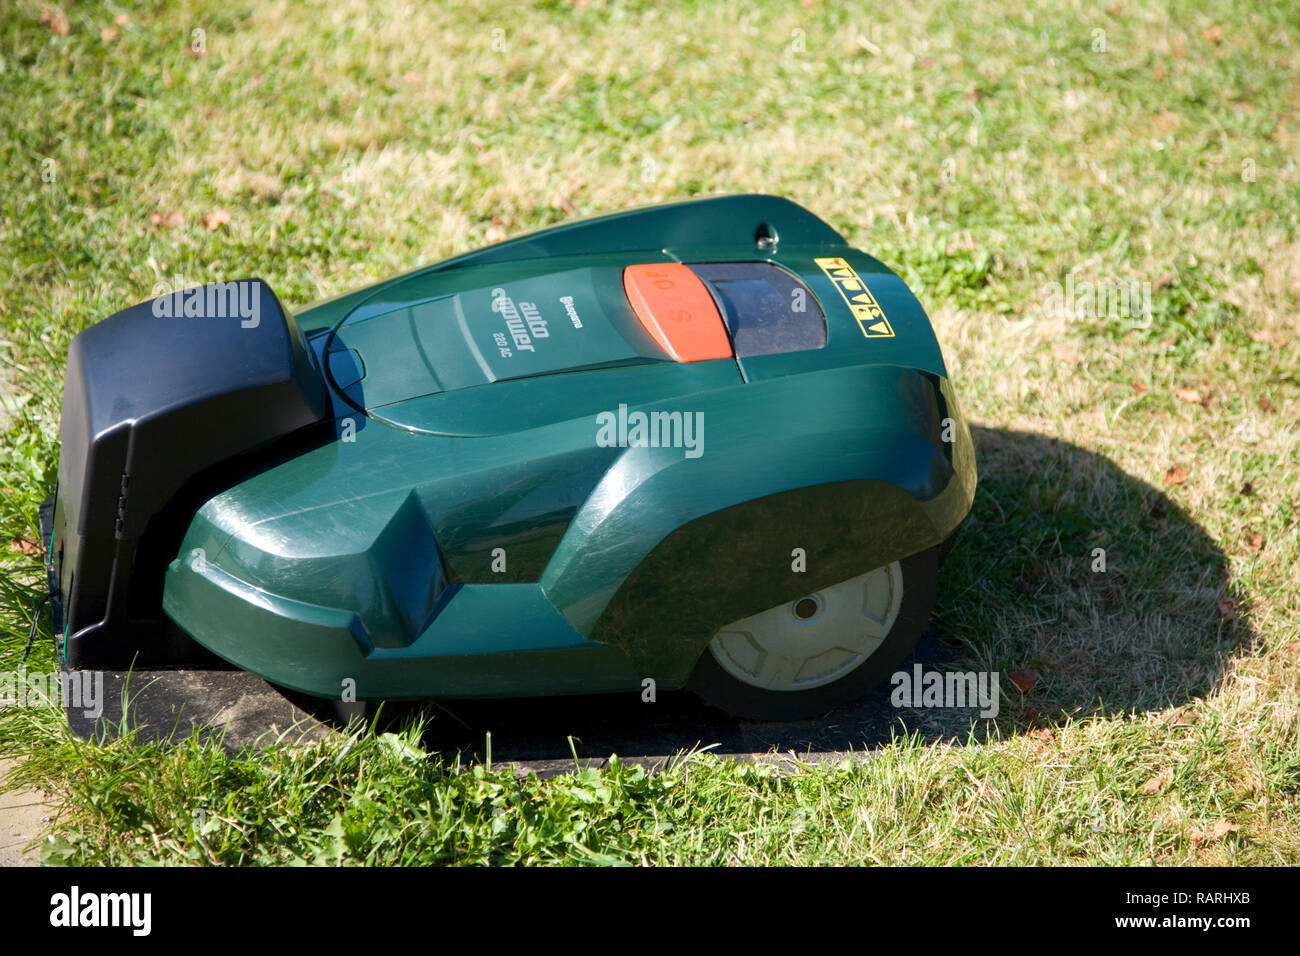 Green automatic robot lawnmower docked in its charging station near a patio - Stock Image